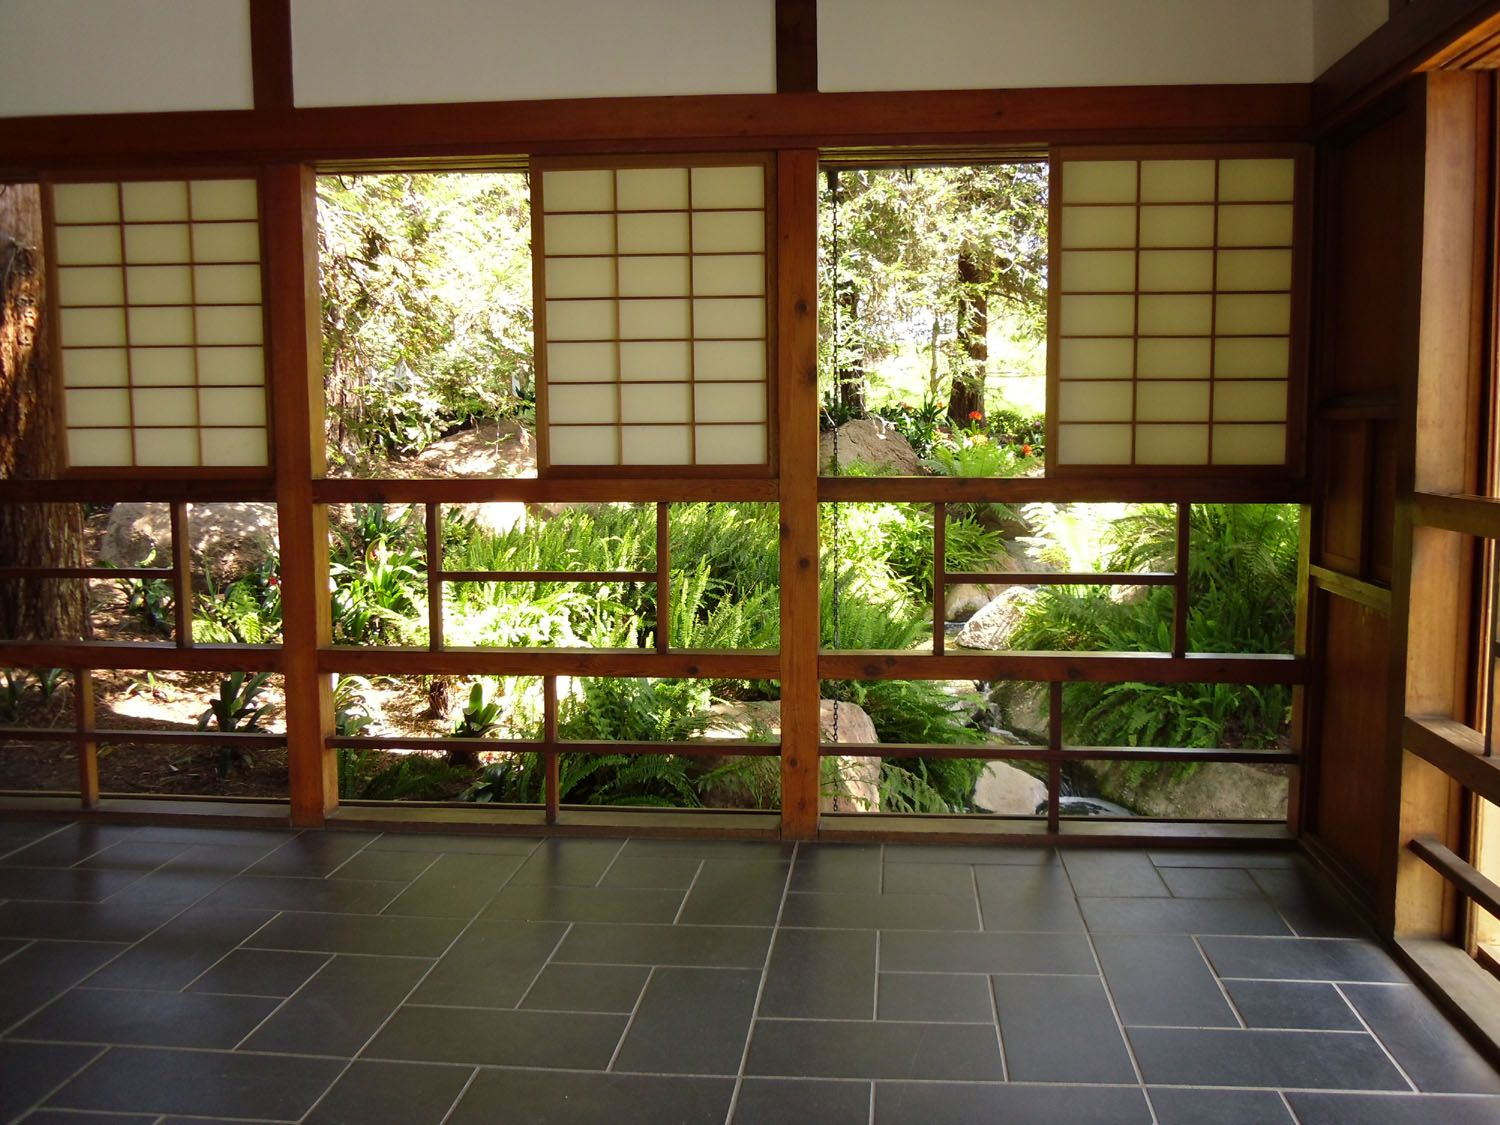 Japanese Houses Interior house: amazing japanese home interior design with open wall and